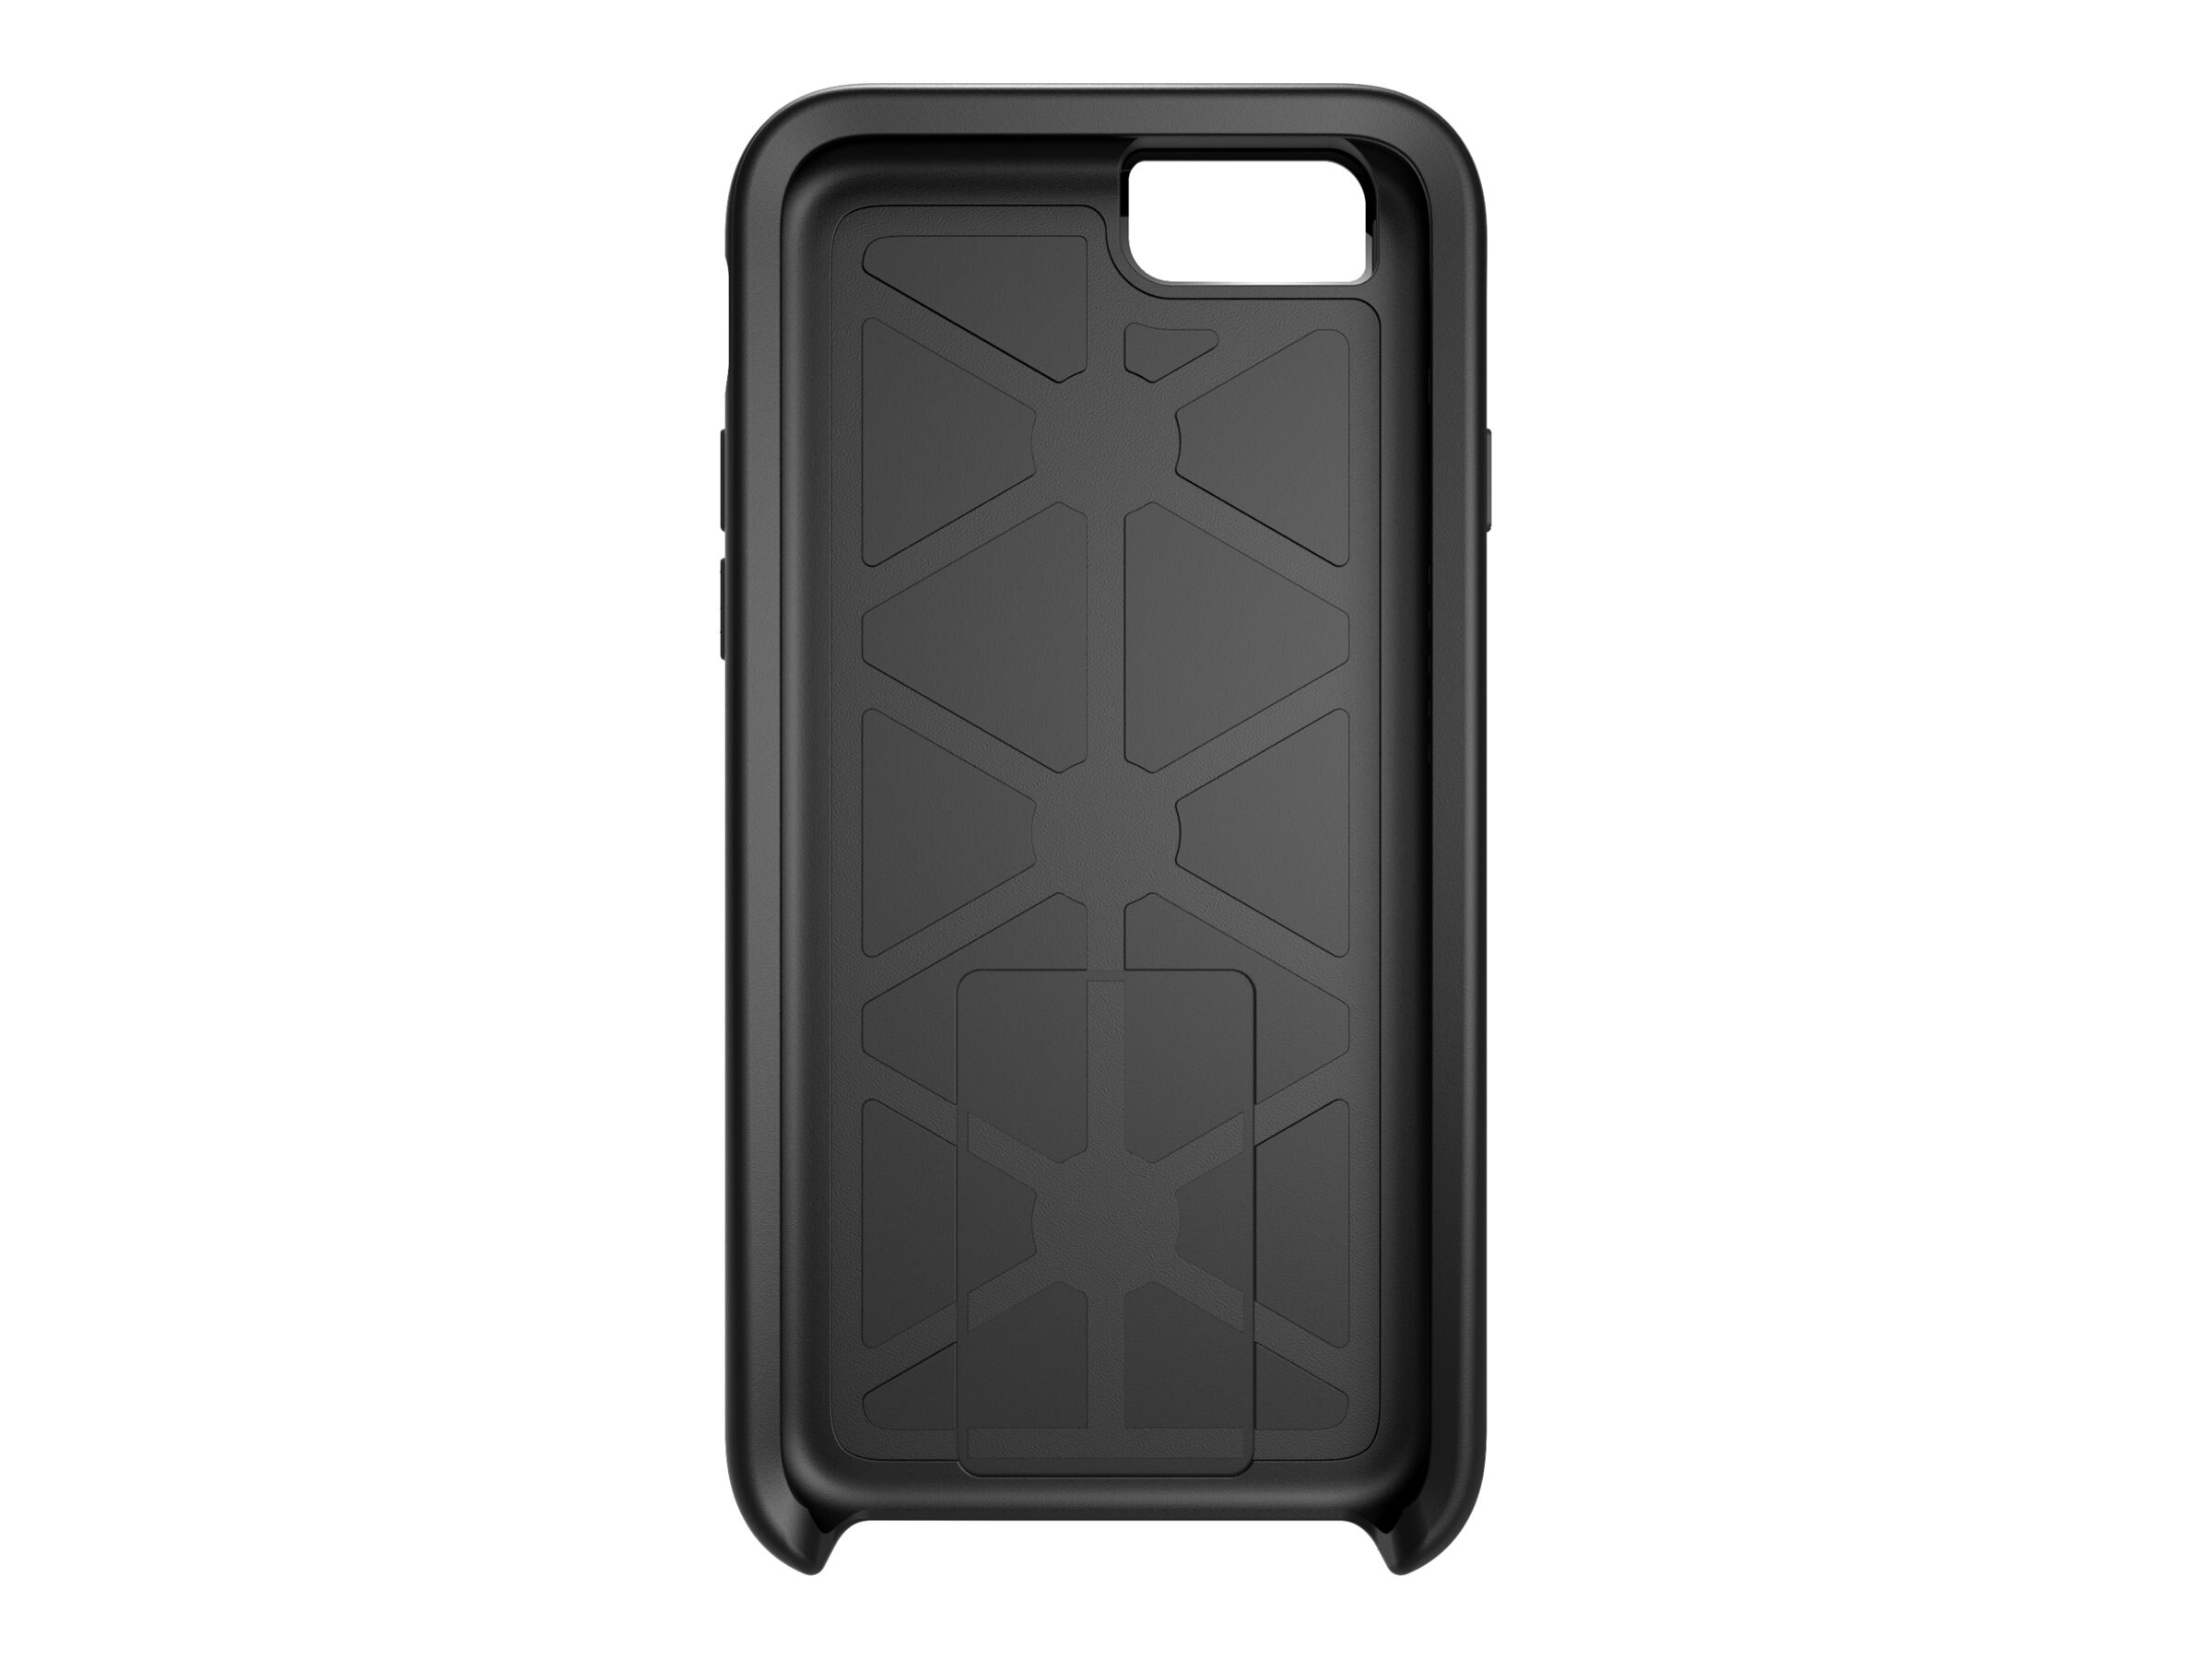 OtterBox Universal Case Pro Pack for iPhone 6 6s, Black